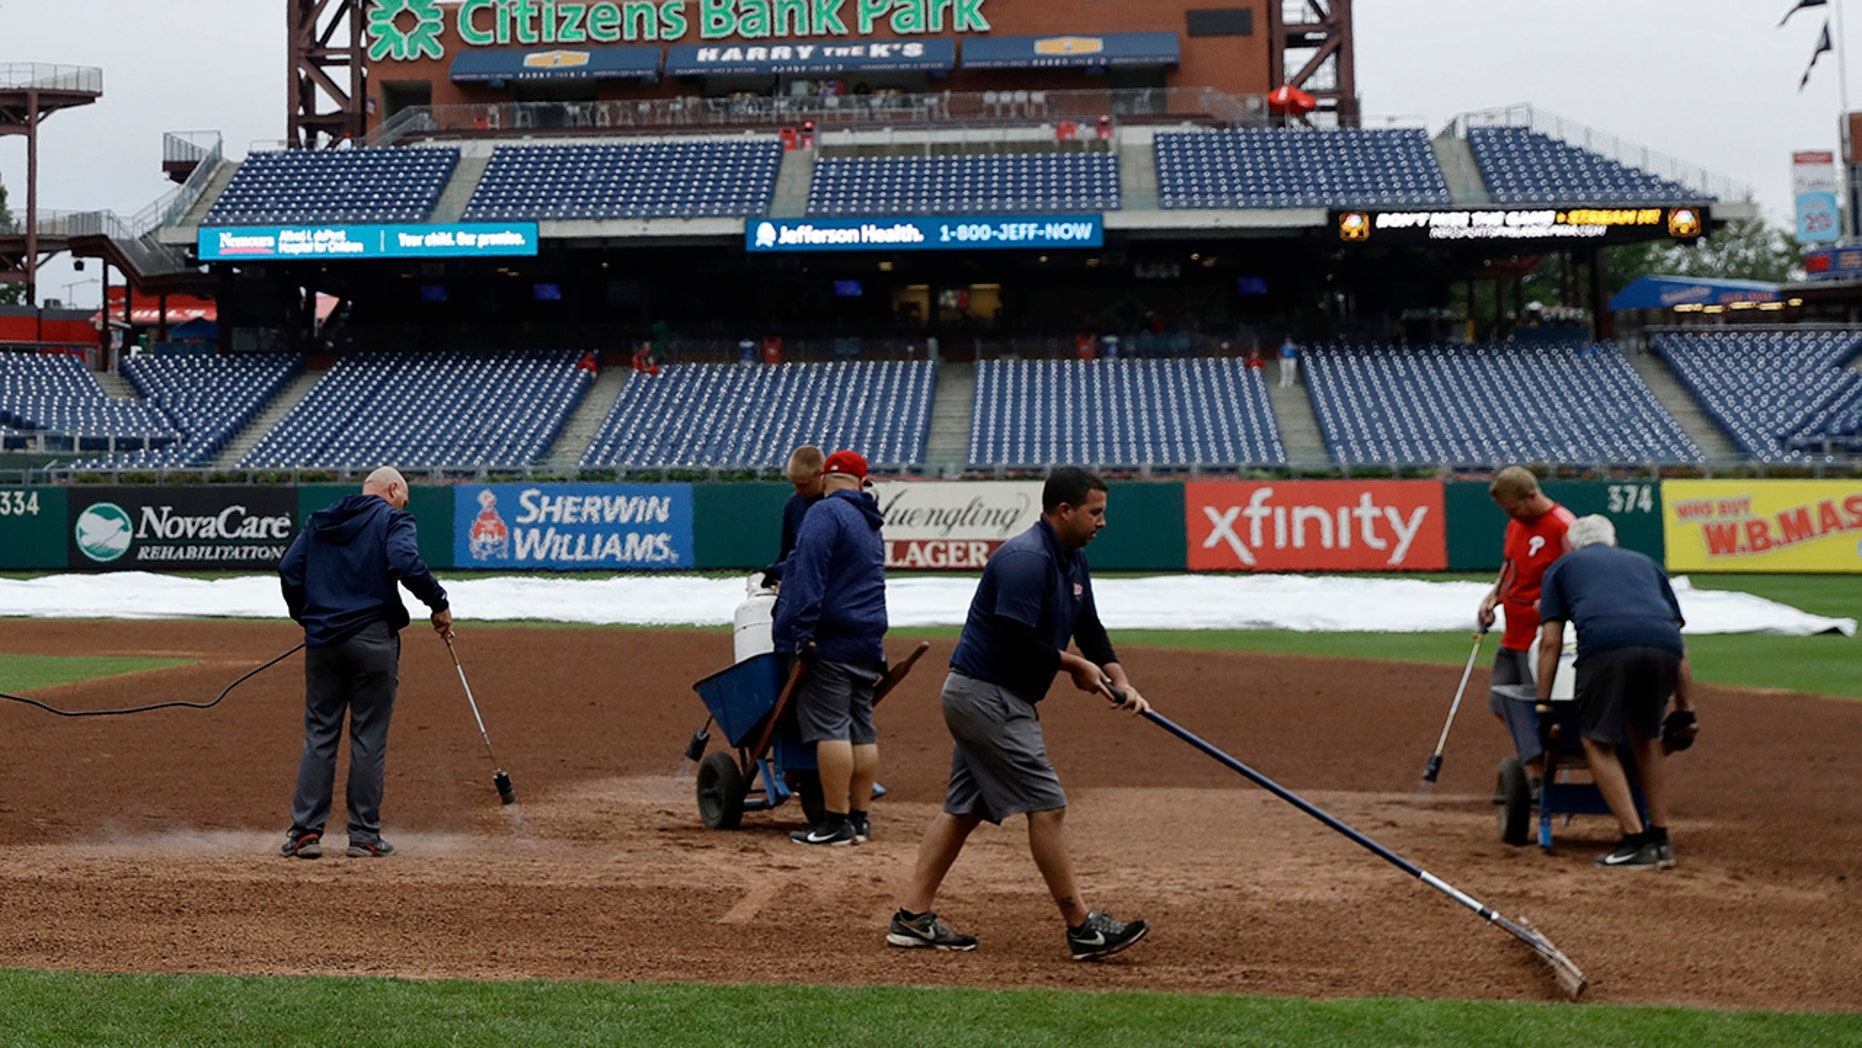 Grounds crew members attempted to dry the Phillies' infield with blow torches.